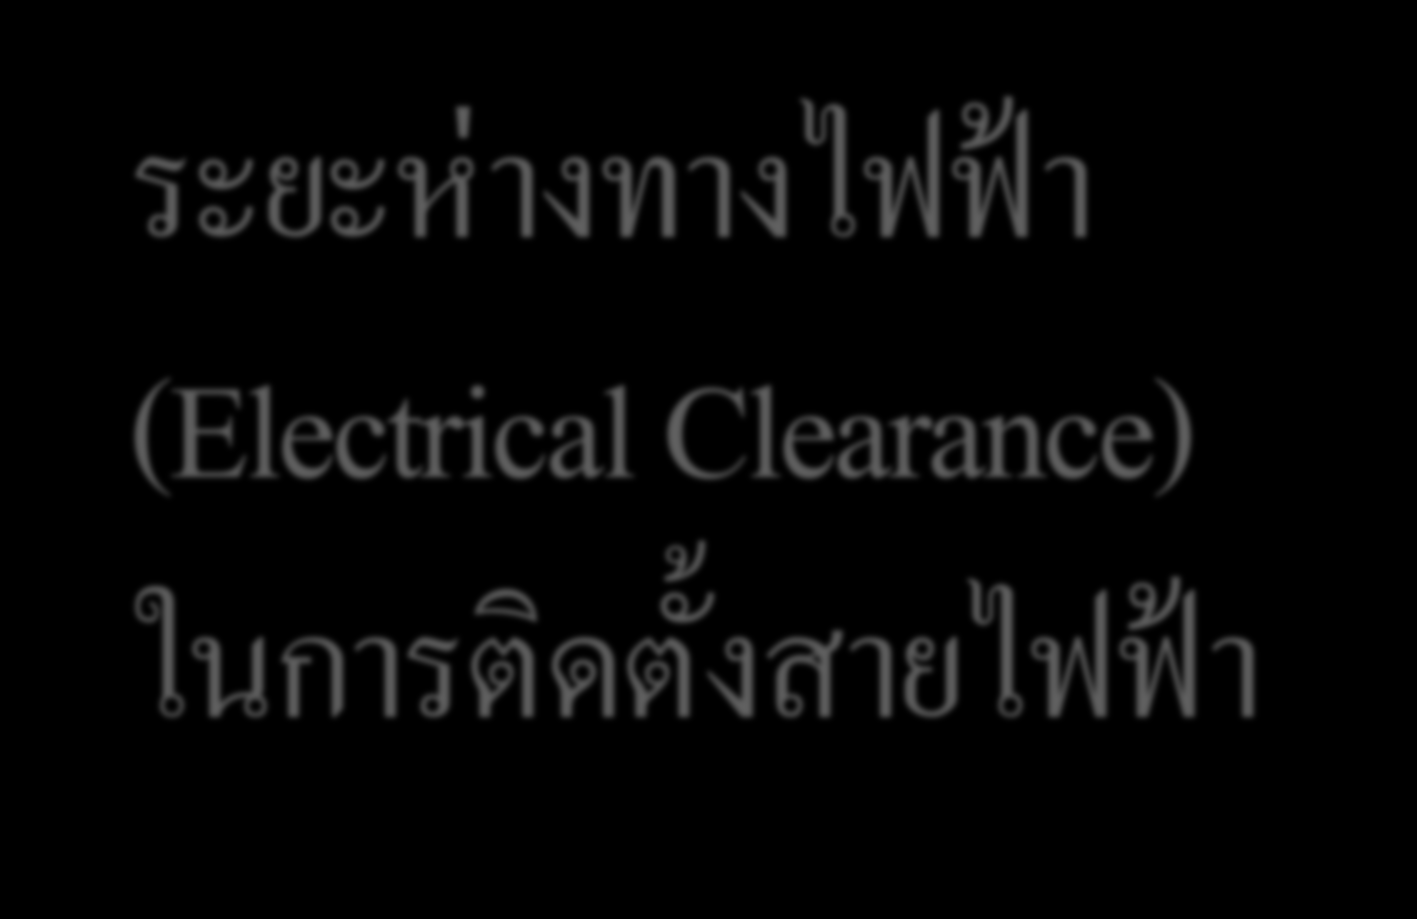 (Electrical Clearance)